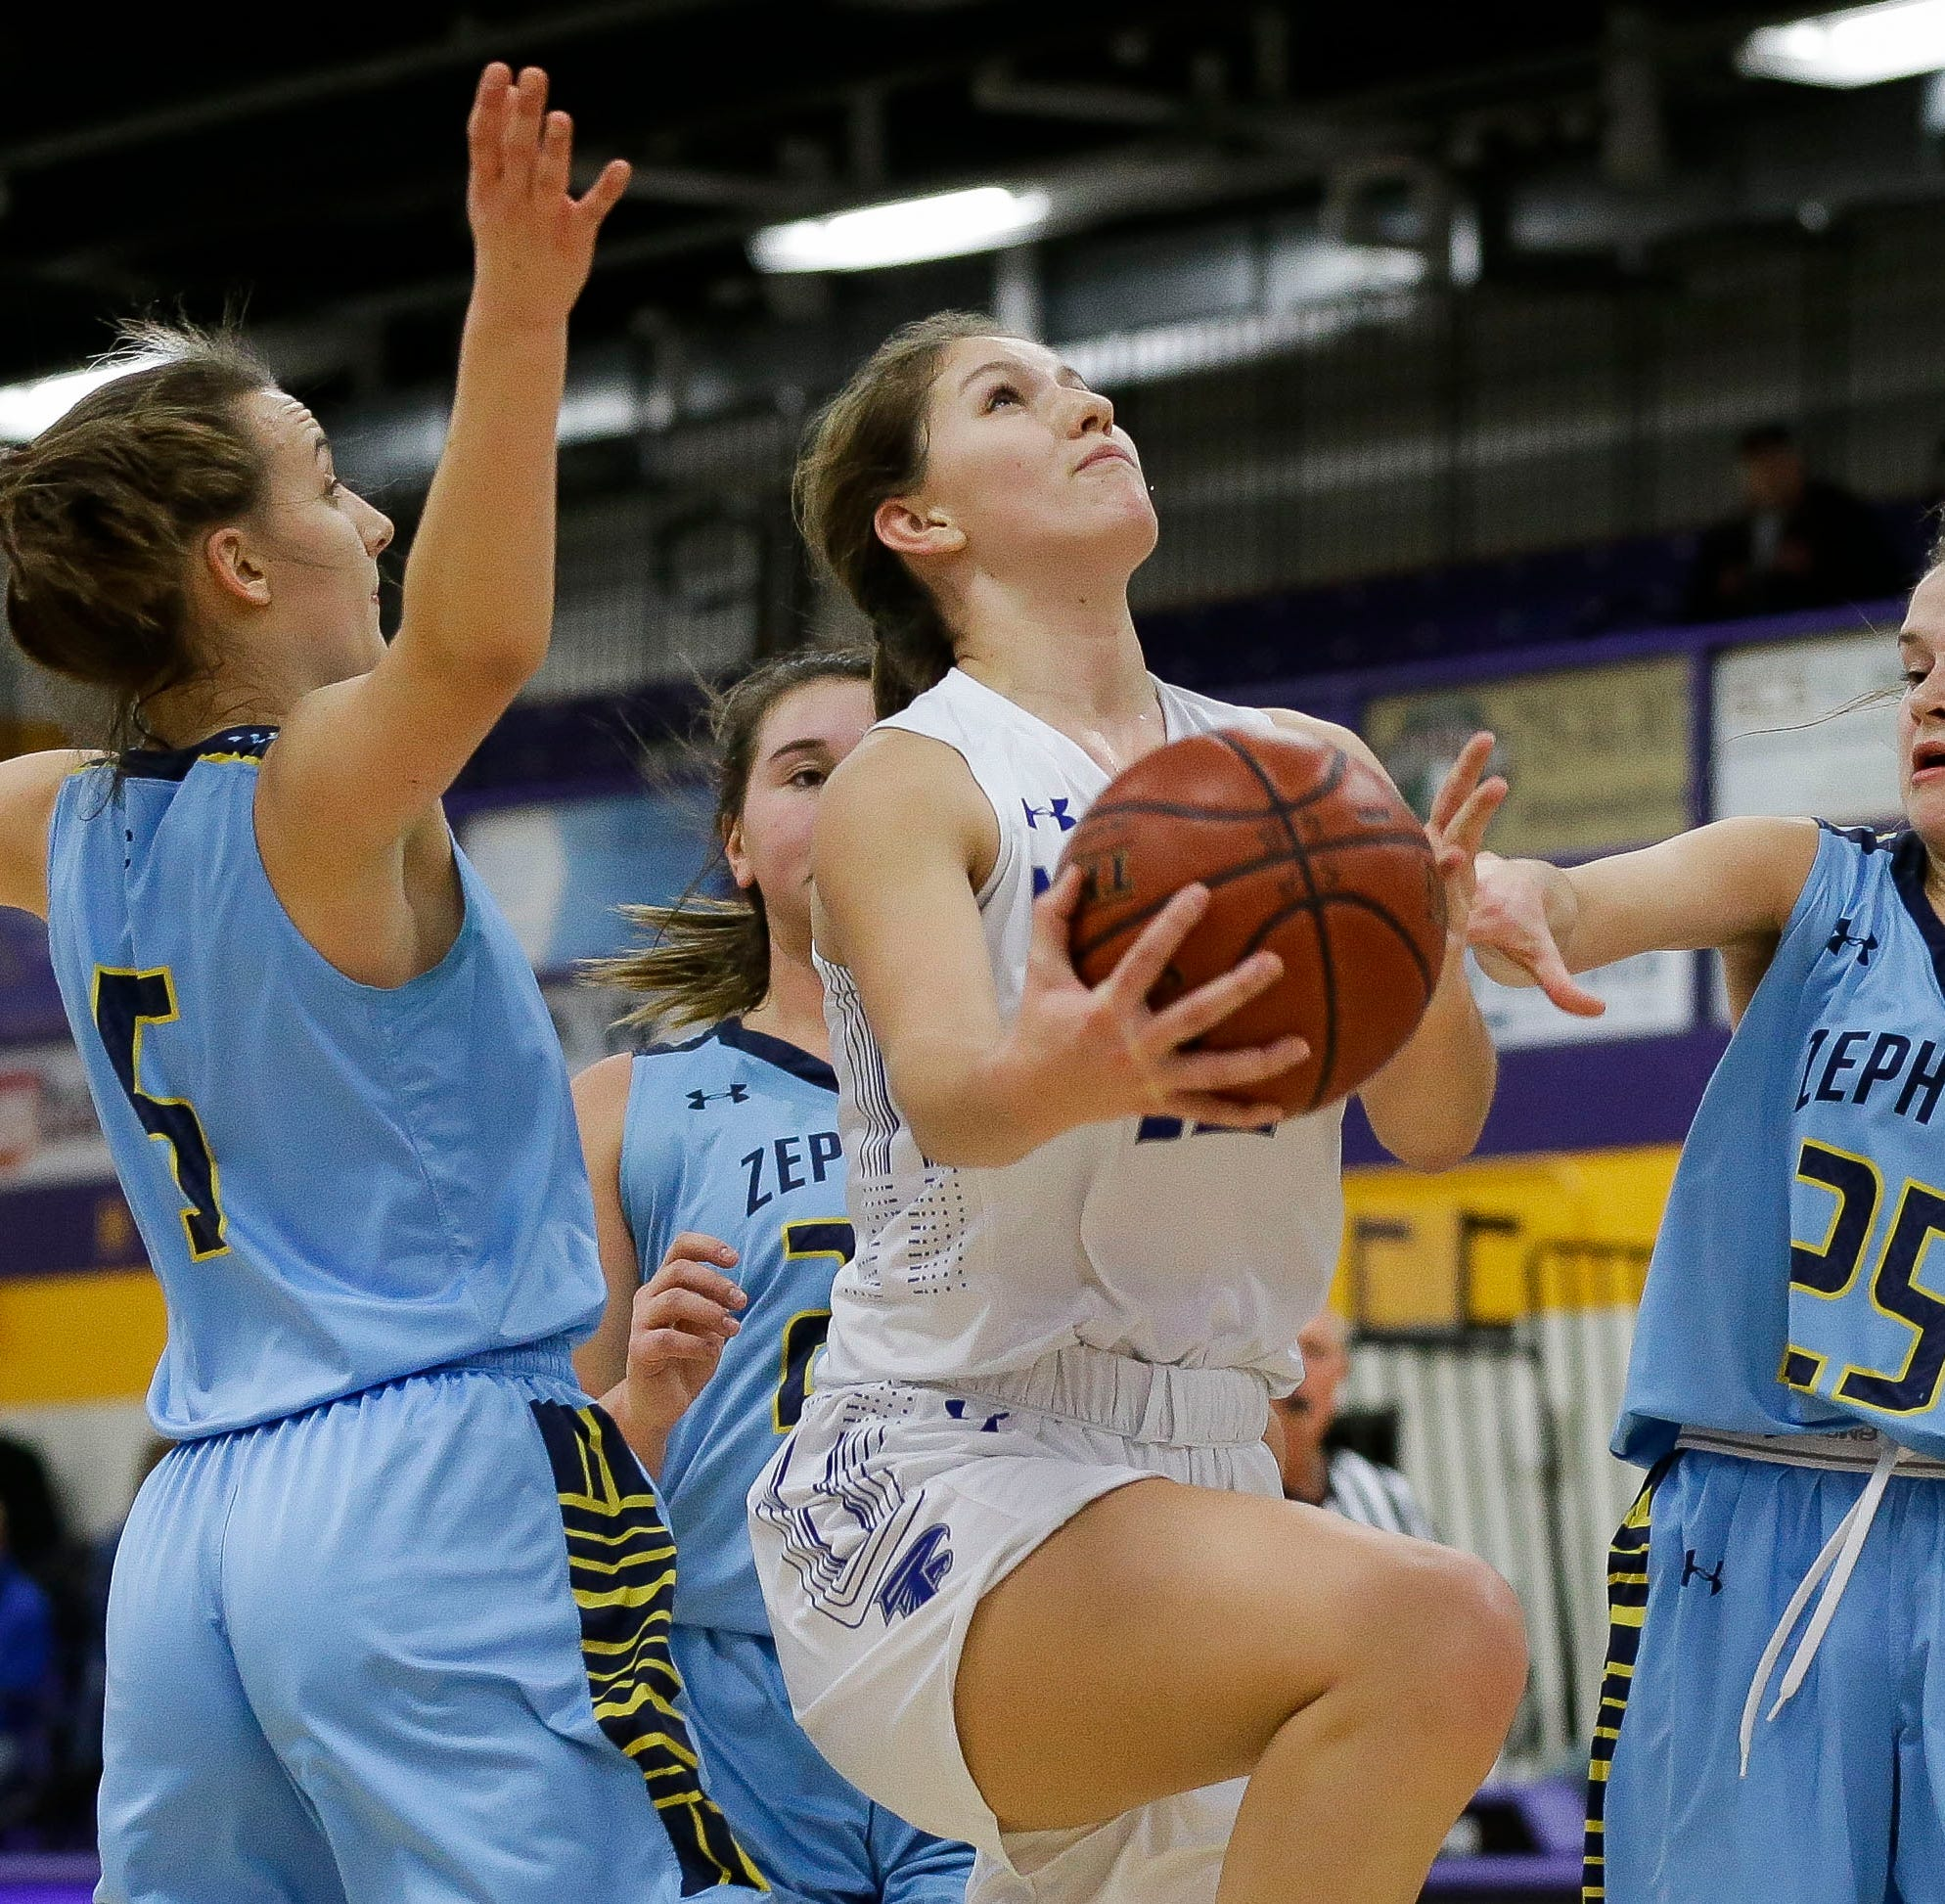 Girls basketball: No. 4 Amherst passes stern test from Saint Mary Catholic at Sentry Classic